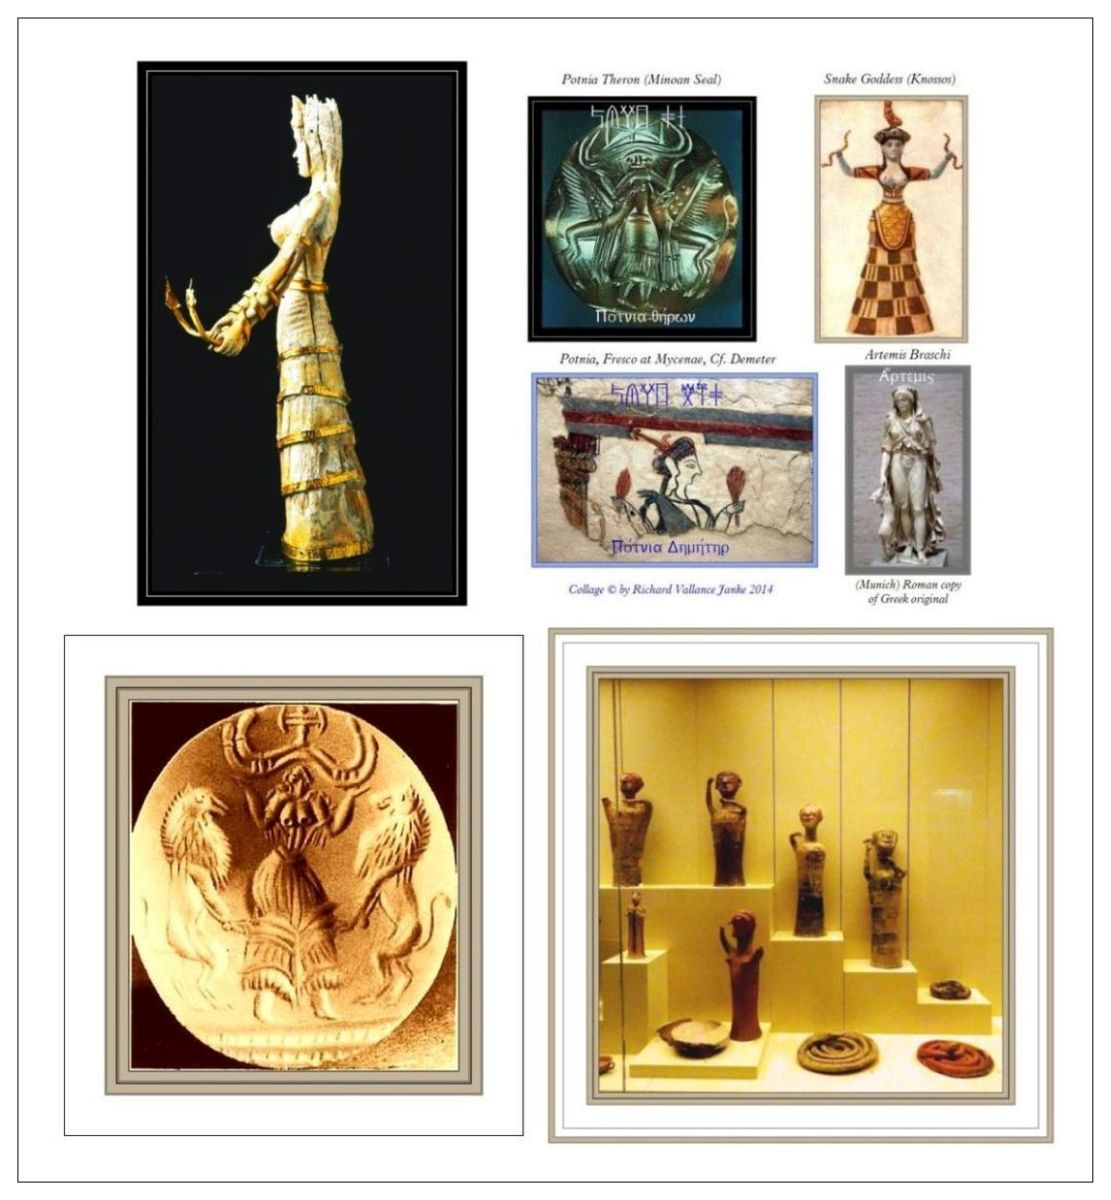 the minoans and mycenaeans essay This is not an example of the work written by our professional essay writers   the ships used not by the mycenaeans but the minoans[25.